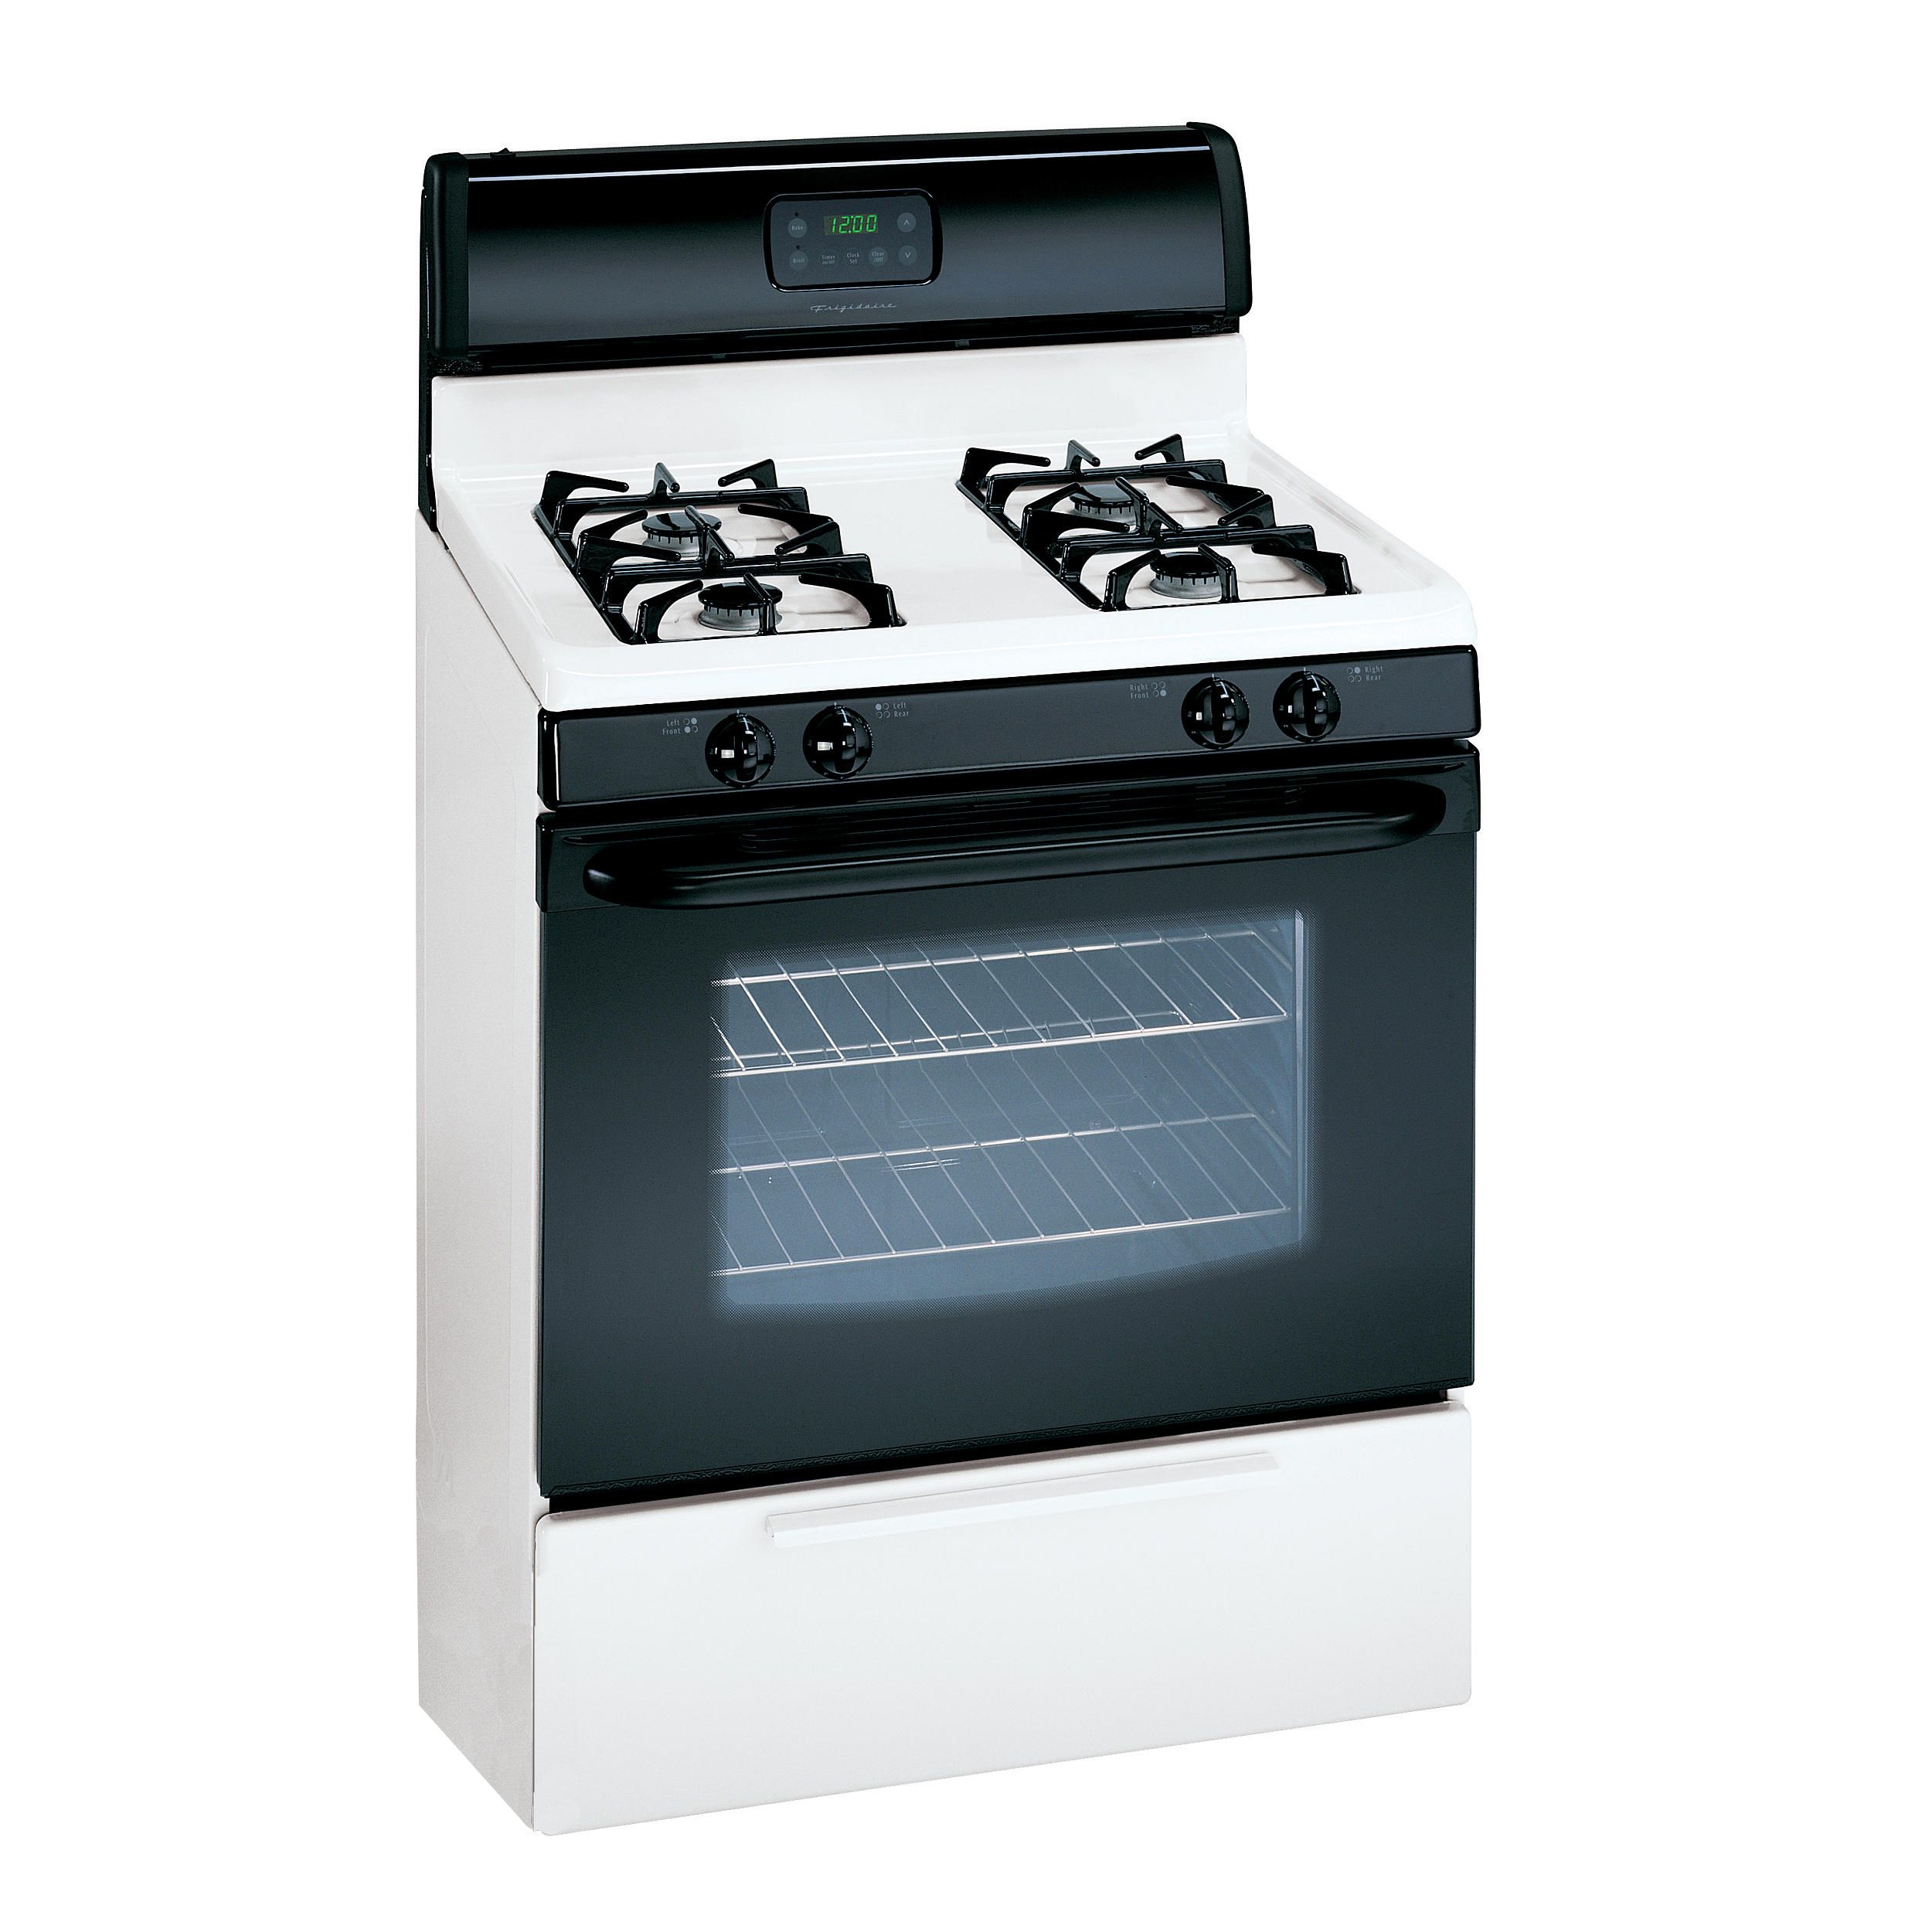 Frigidaire Gallery Range Reviews Gas Frigidaire Gallery Gas Range Credit Thermador Double